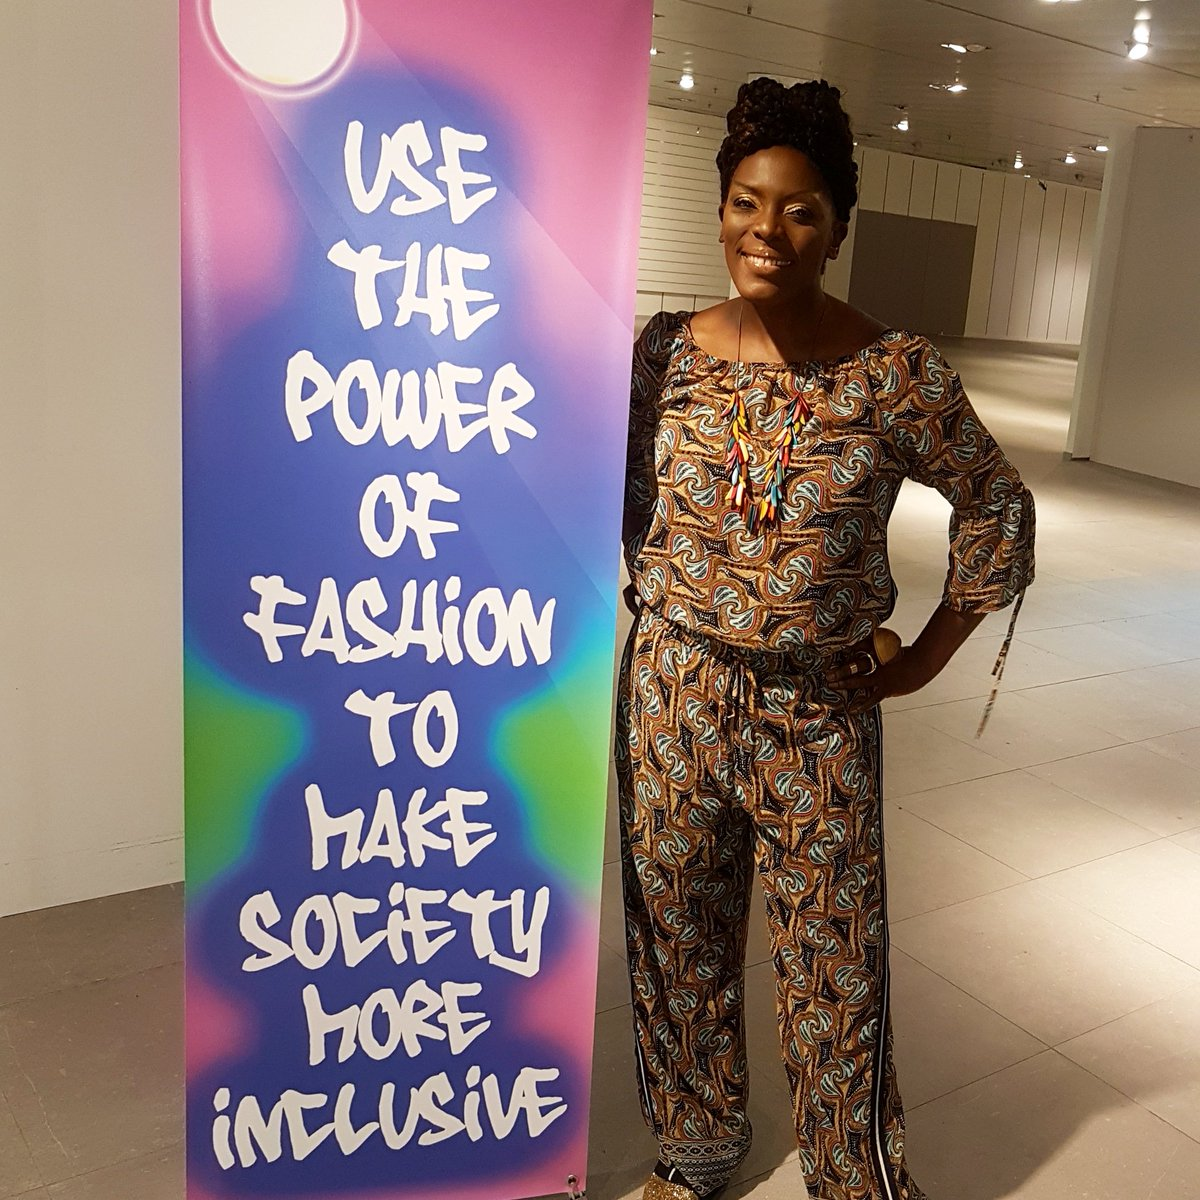 Janice Deul On Twitter Almost Showtime Will Talk About My Fashion Activism On The Awearness Fashion Stage During The Fashion And Design Festival In Arnhem Who S In Divetsityrules Https T Co Snxjp9awuf